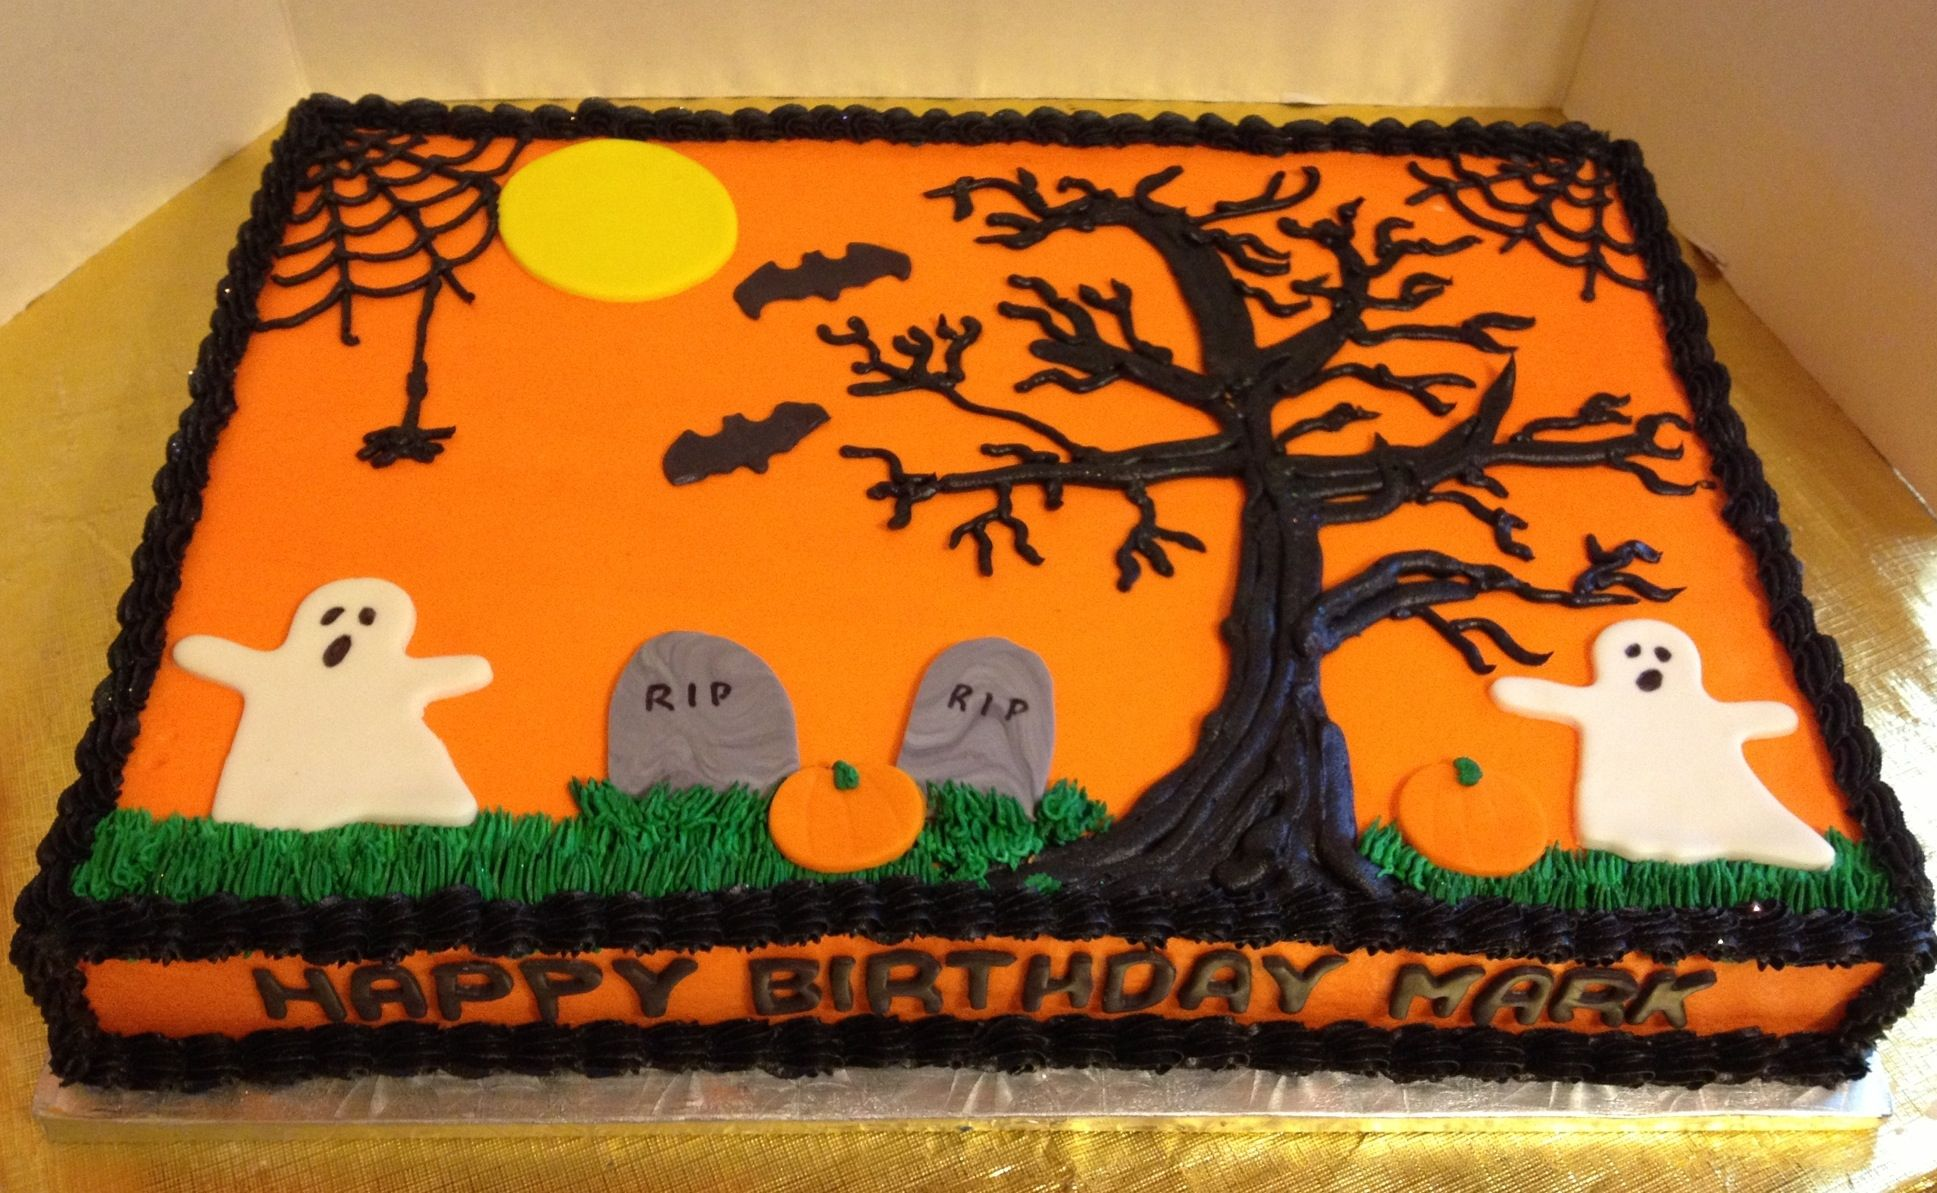 Wondrous Halloween Birthday Sheet Cake With Images Halloween Cake Funny Birthday Cards Online Barepcheapnameinfo